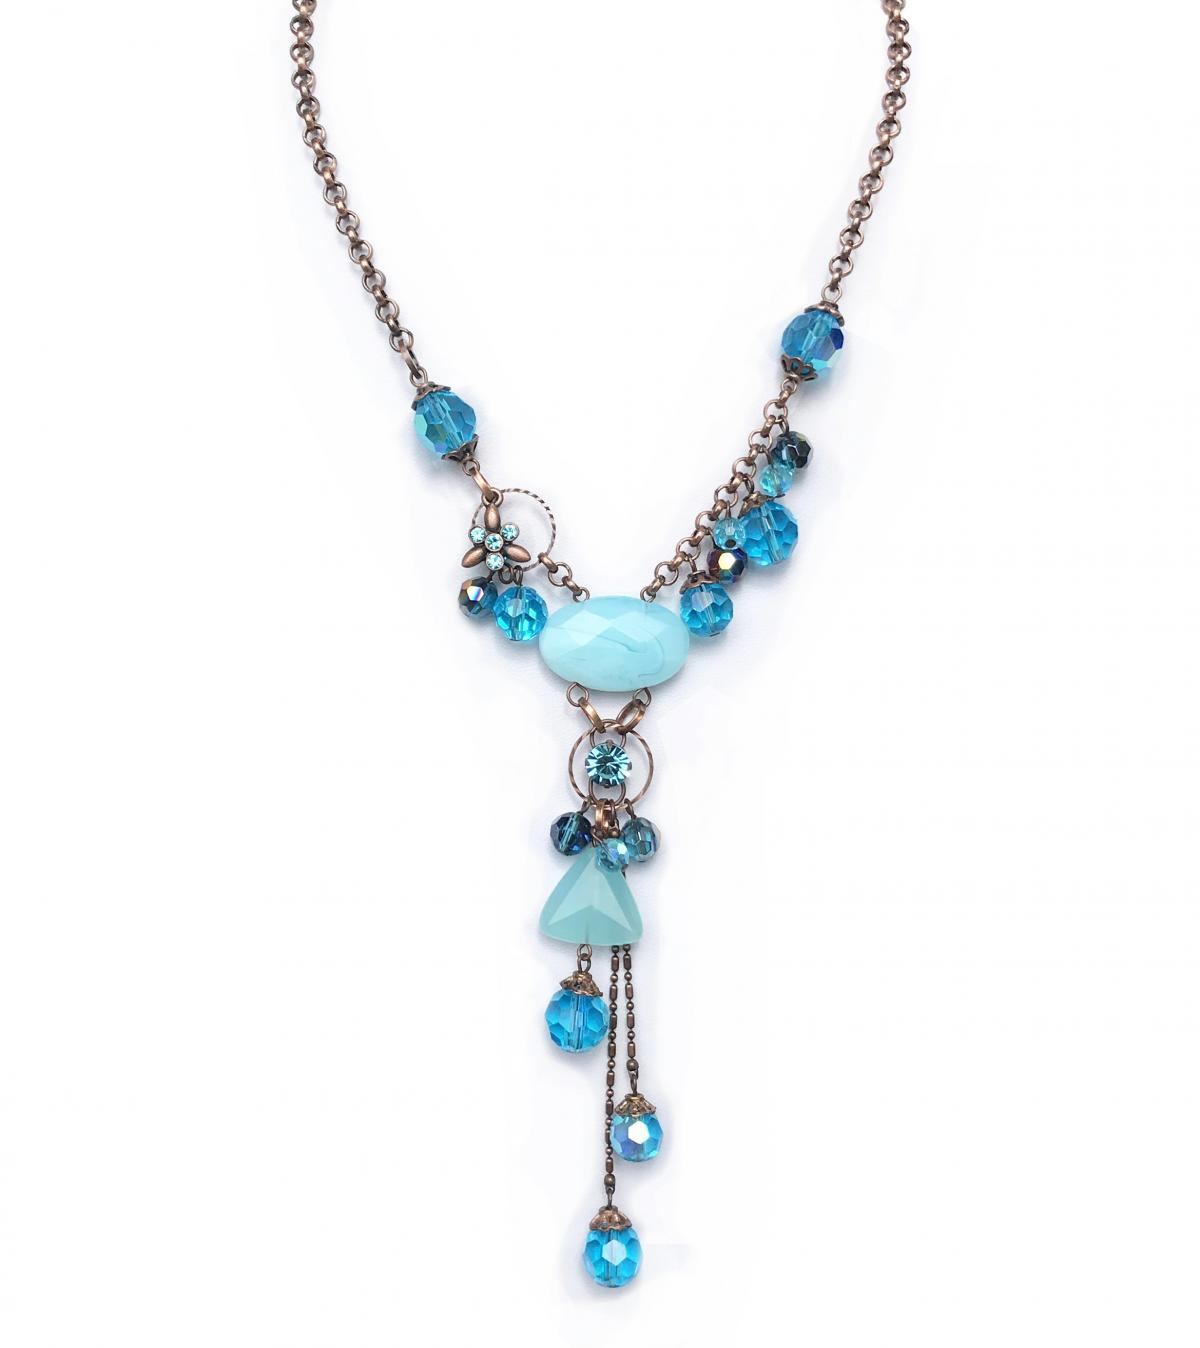 Blue Vintage Style Statement Necklace